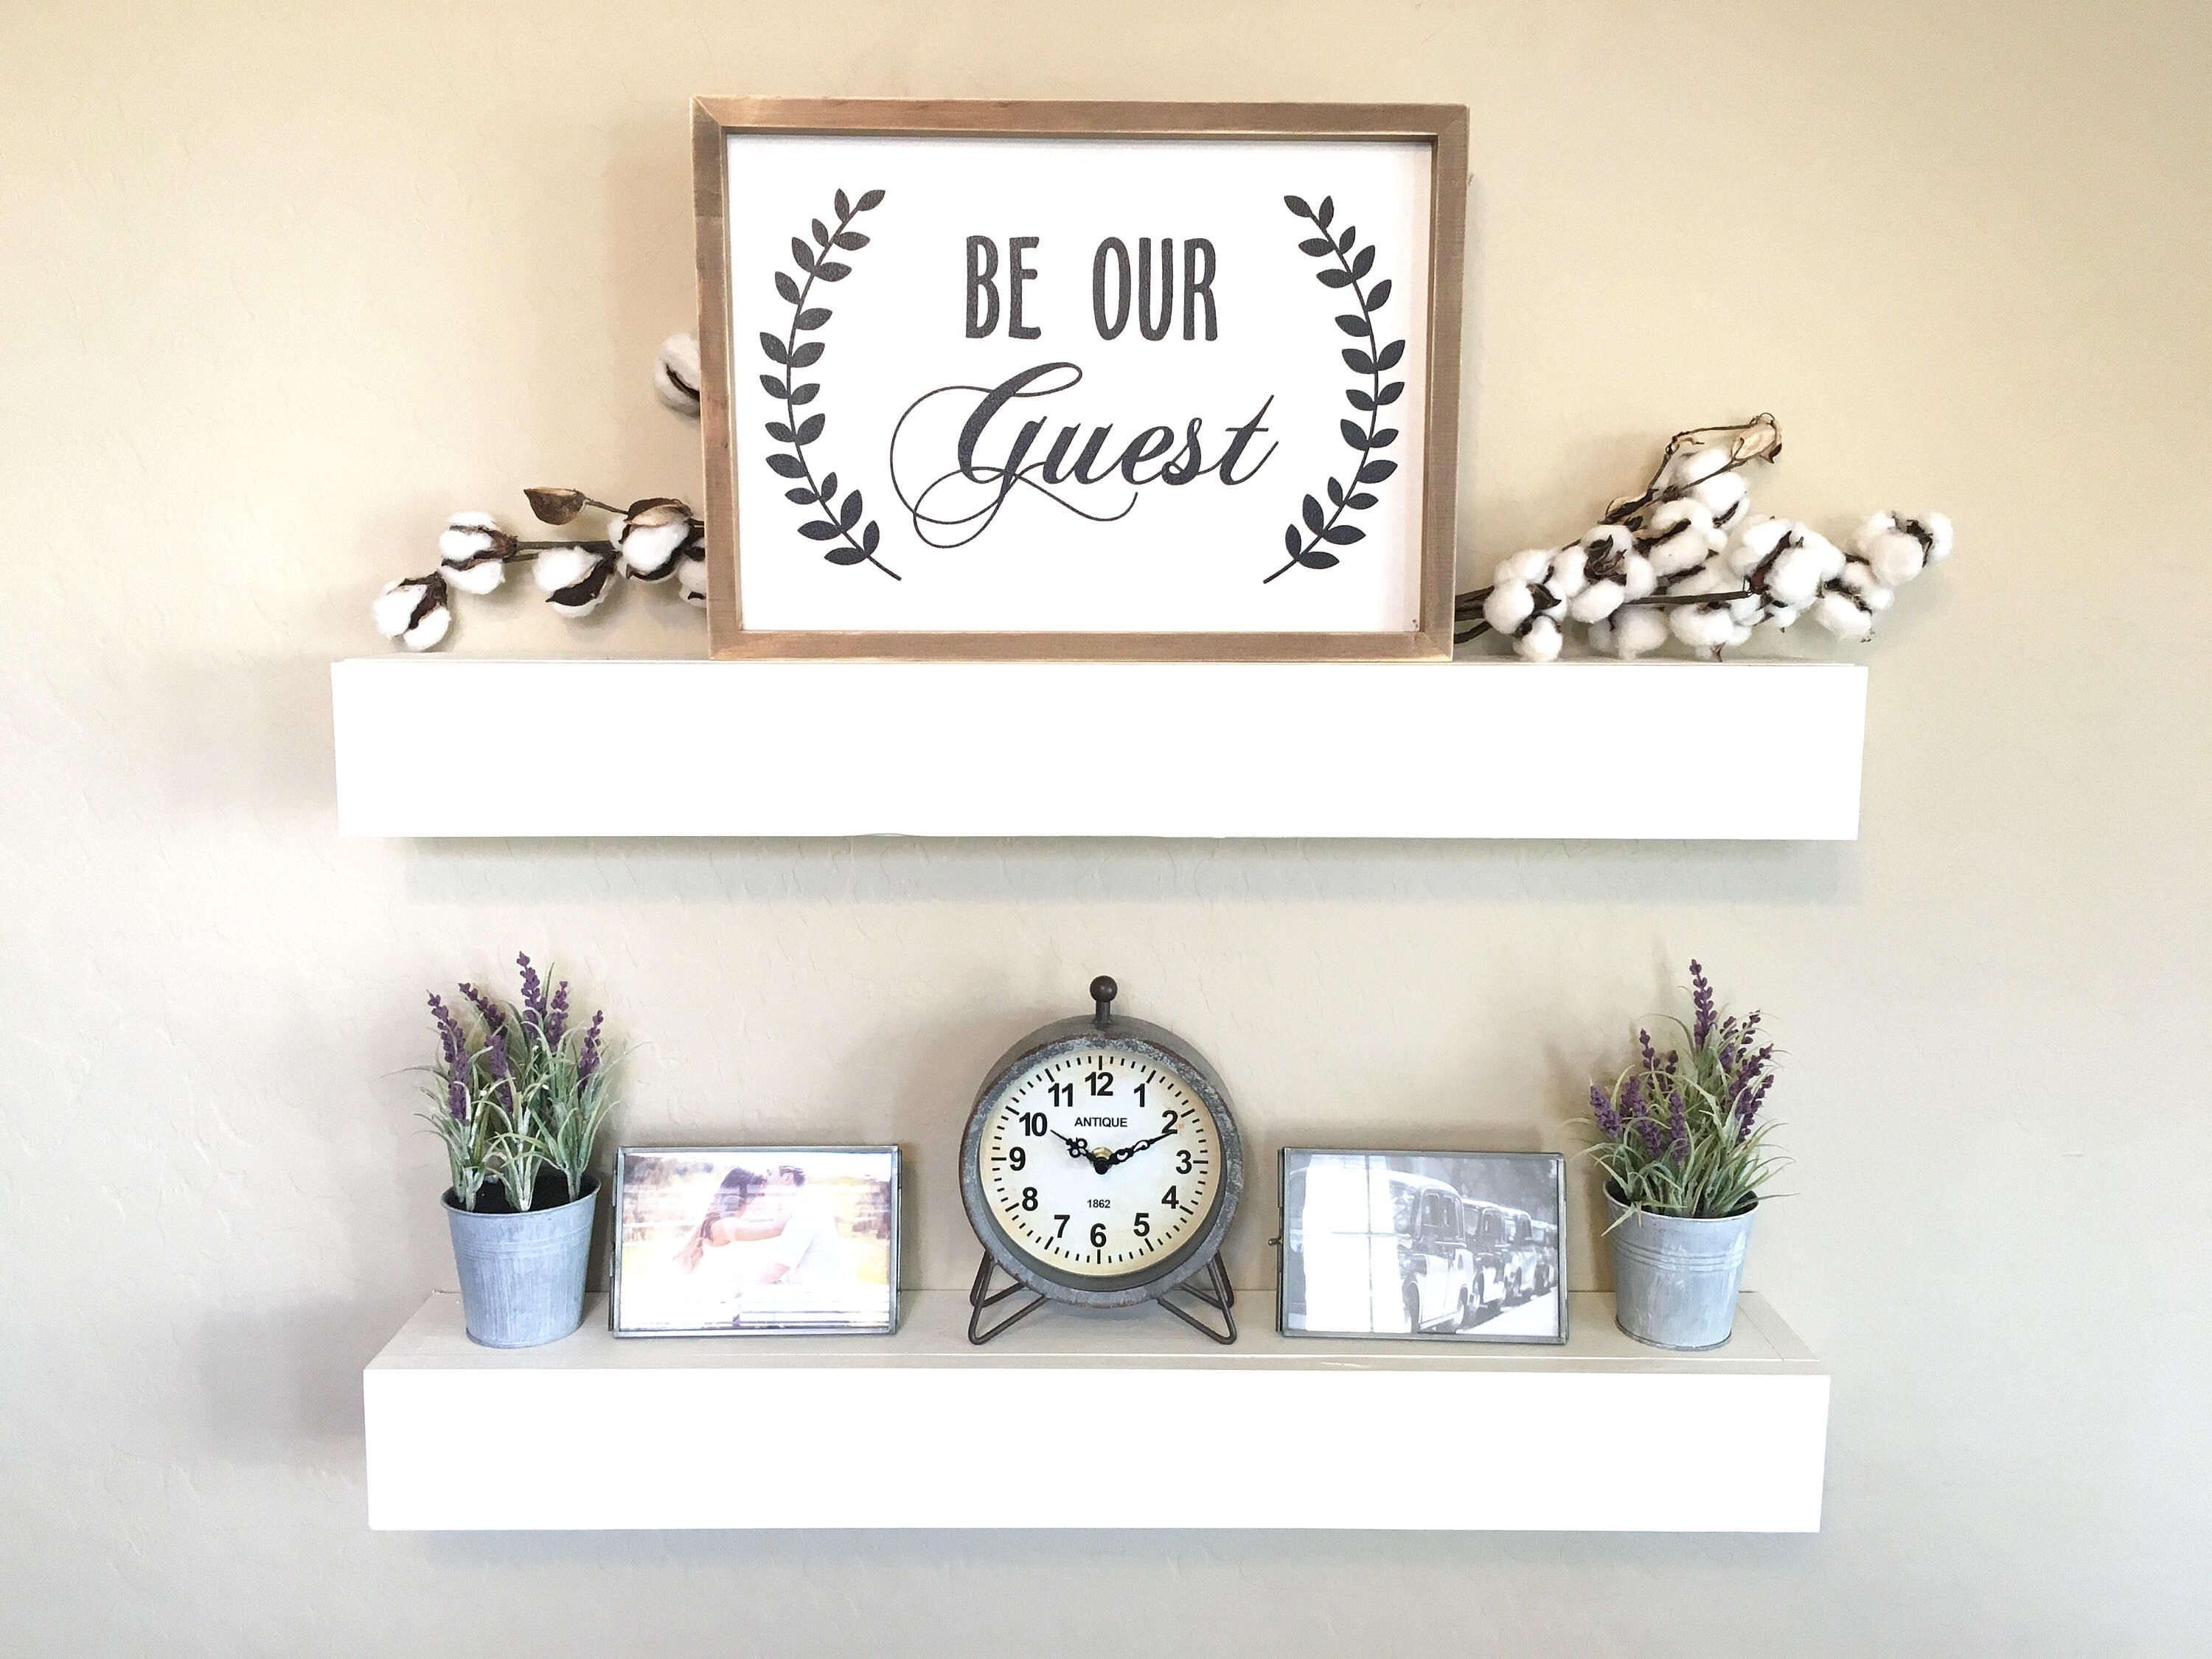 Floating Shelves Wall Shelves Farmhouse Decor Rustic Shelves Floating Shelf White Floating Sh Floating Shelves White Floating Shelves Floating Shelf Decor